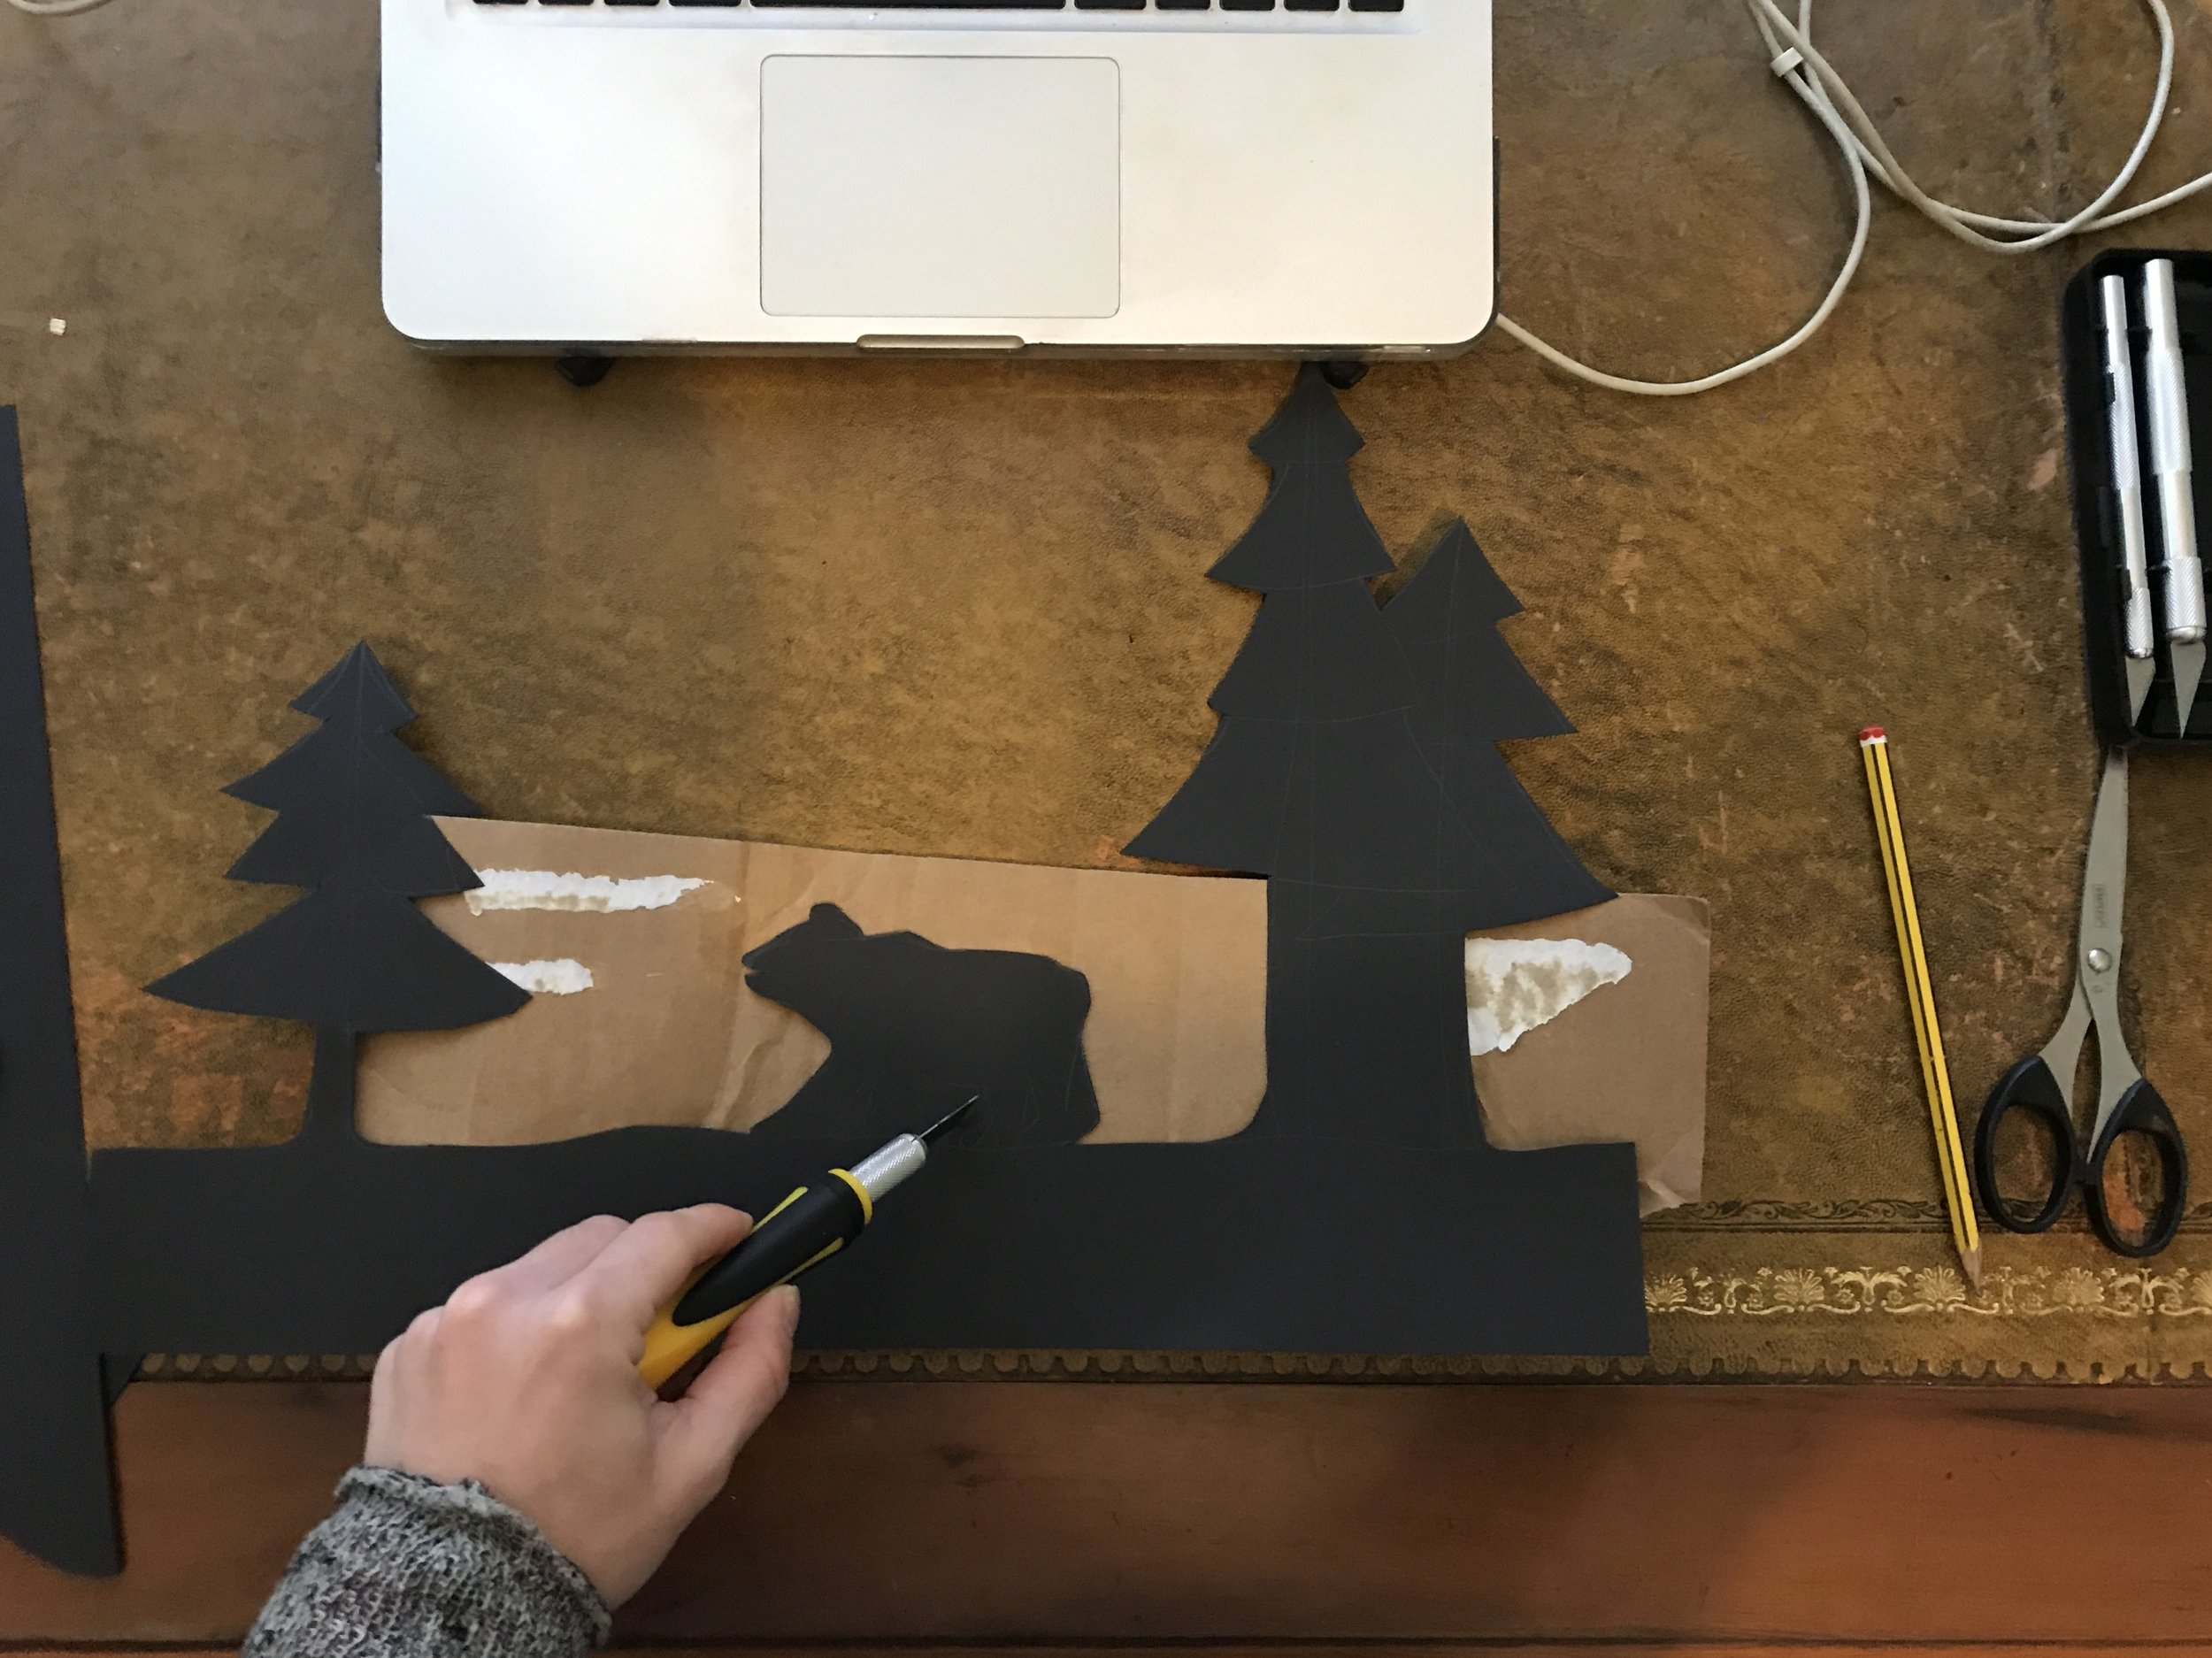 I drew out my Icelandic silhouette scene onto black card. I believe you can't have light without dark. It adds contrast and is totally mesmerising. I used scissors and a craft knife to create the foreground.